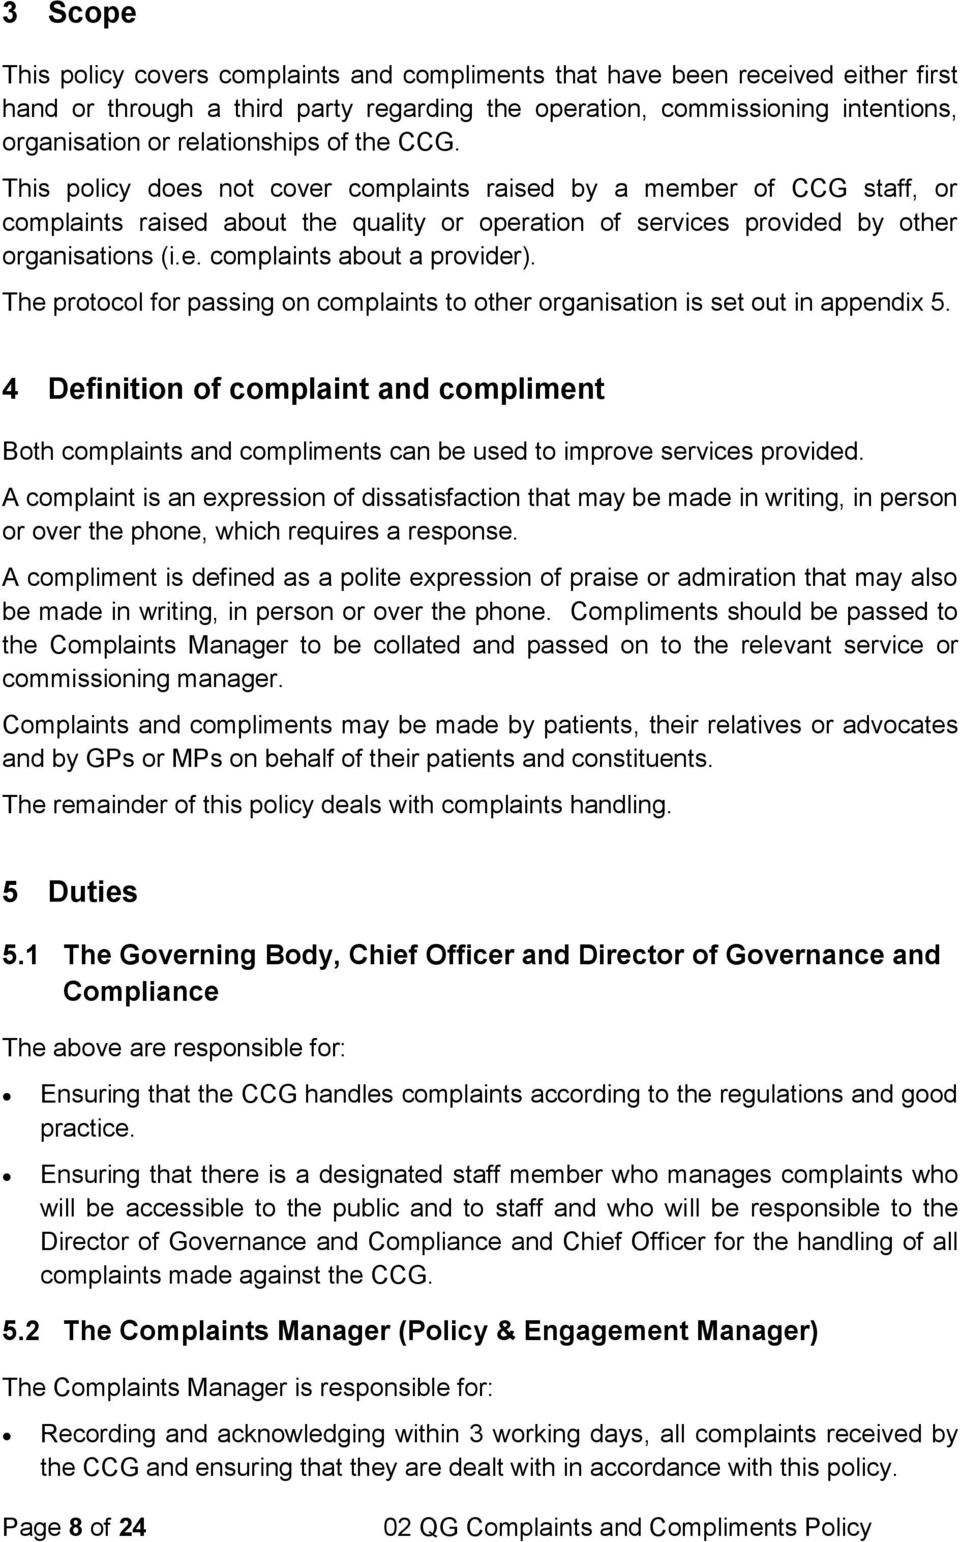 The protocol for passing on complaints to other organisation is set out in appendix 5.